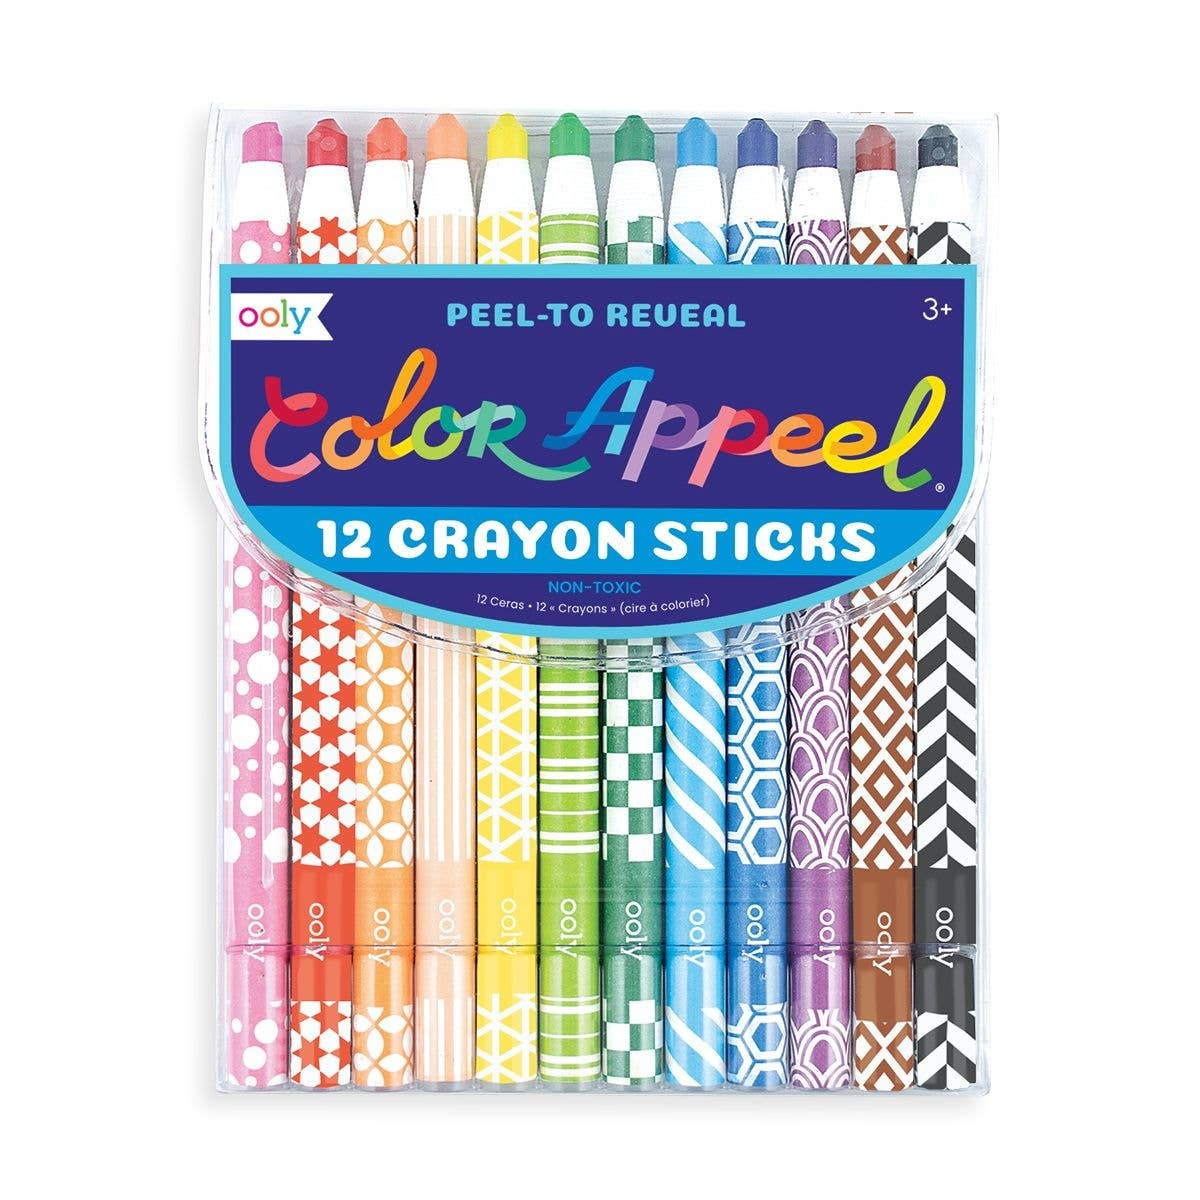 ooly Ooly Color Appeel Crayon Sticks